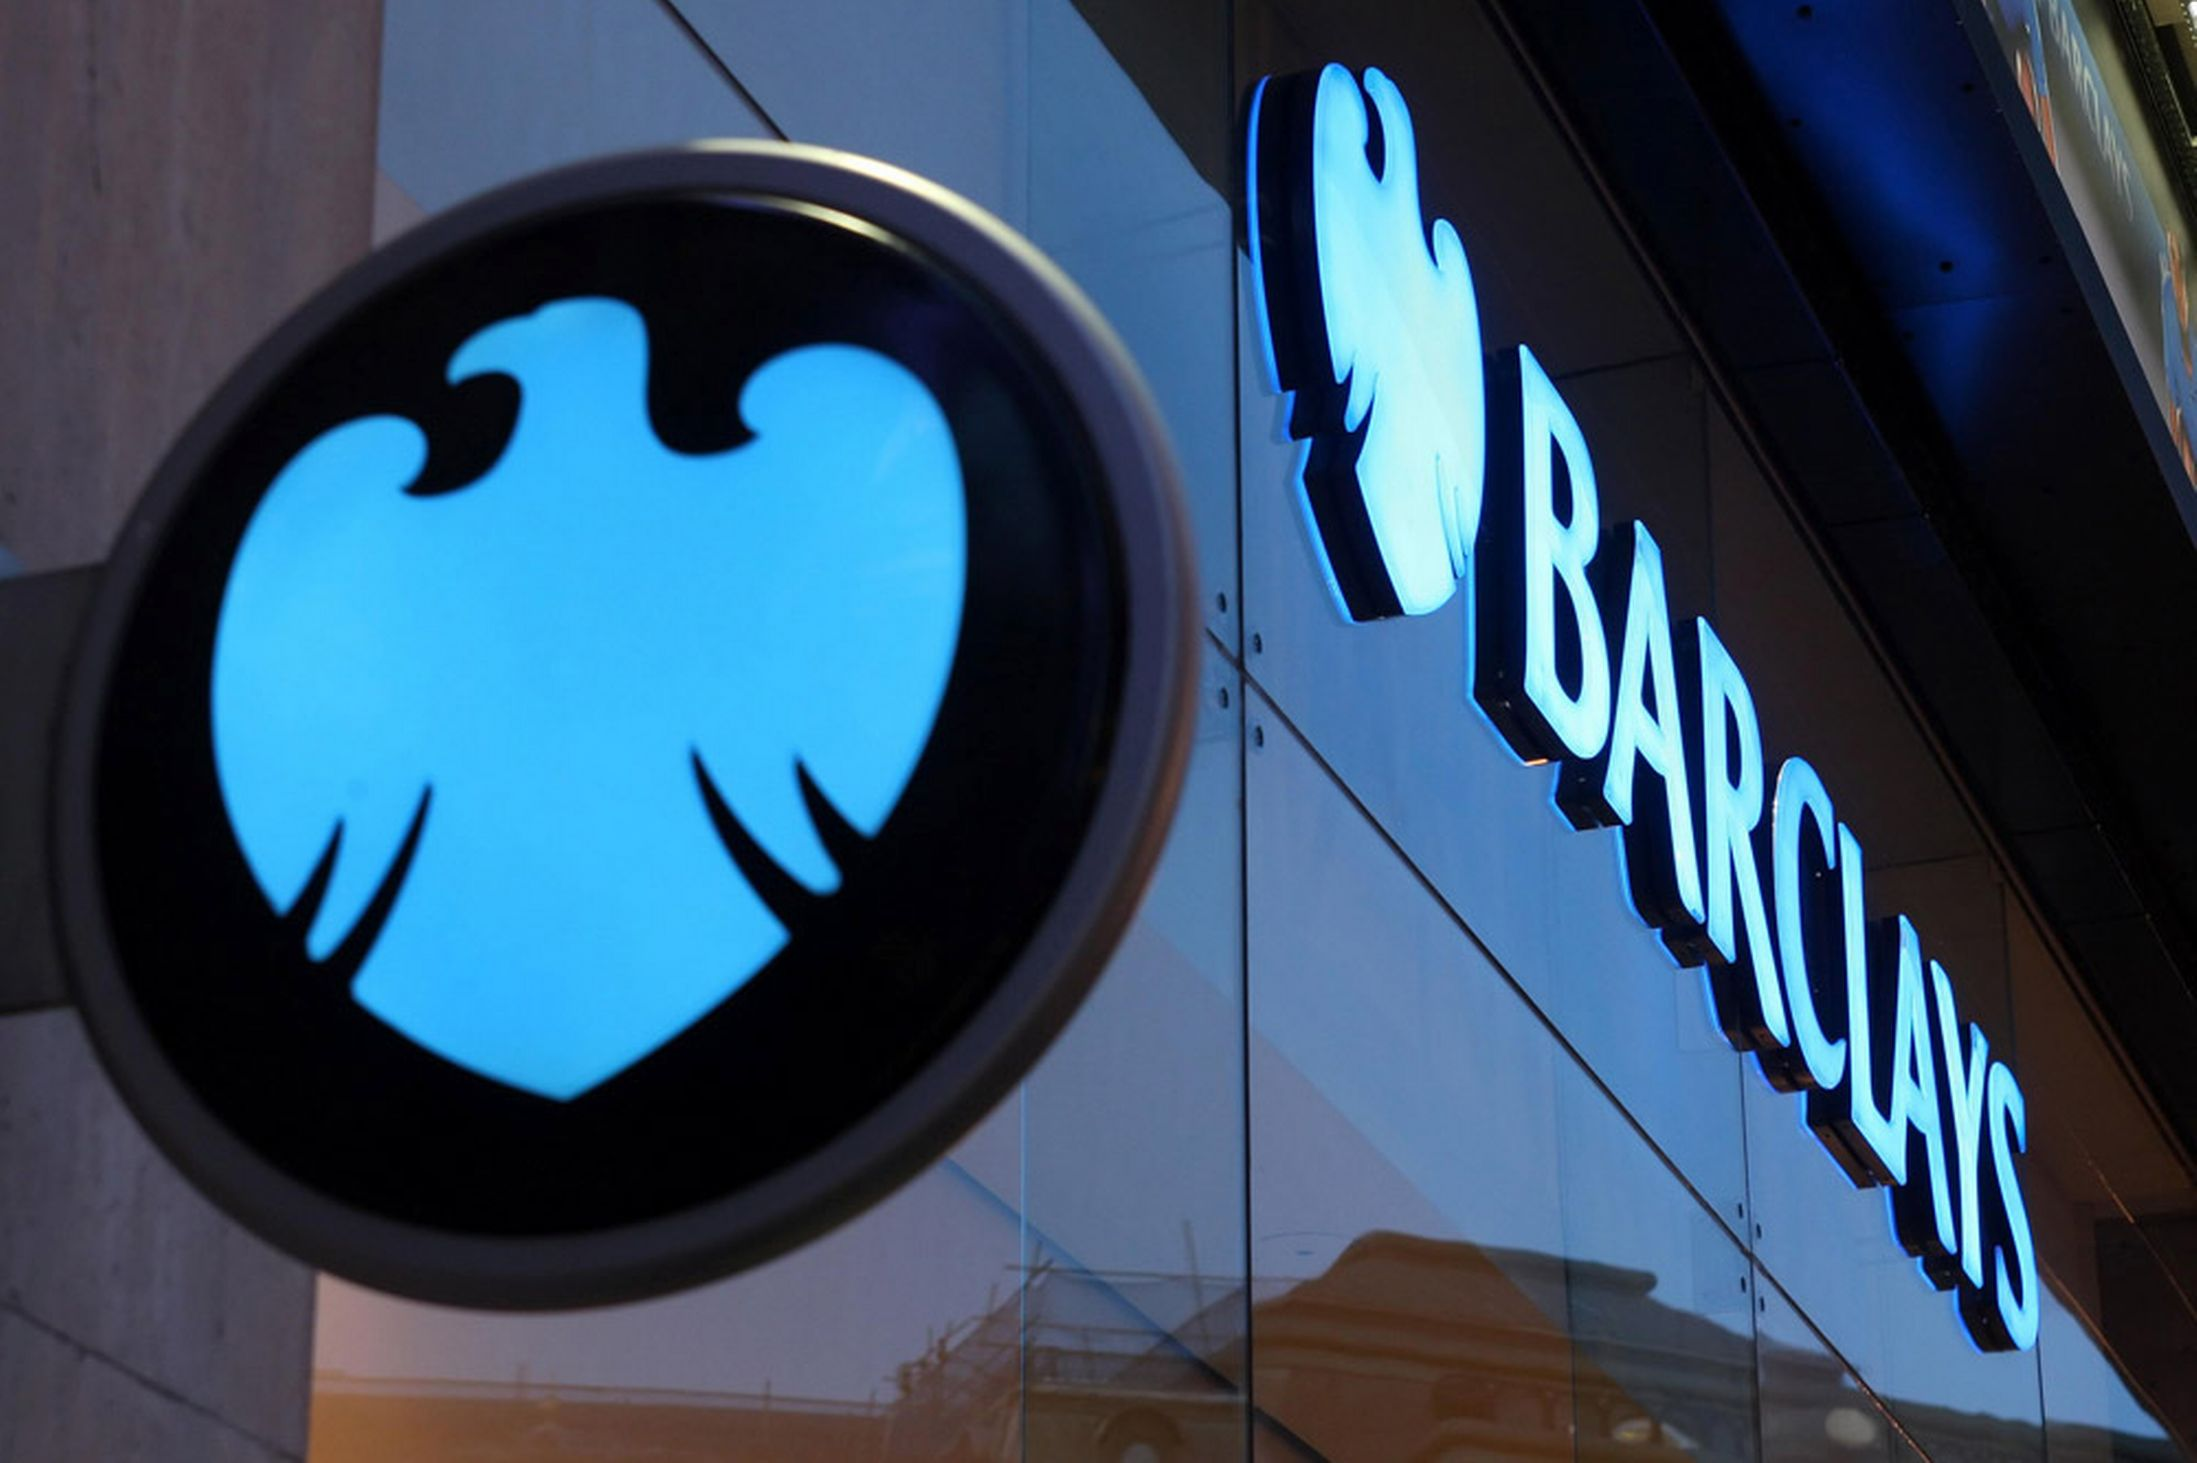 BlackBerry and Barclays Bank Team Up to Offer P2P Money Transfers